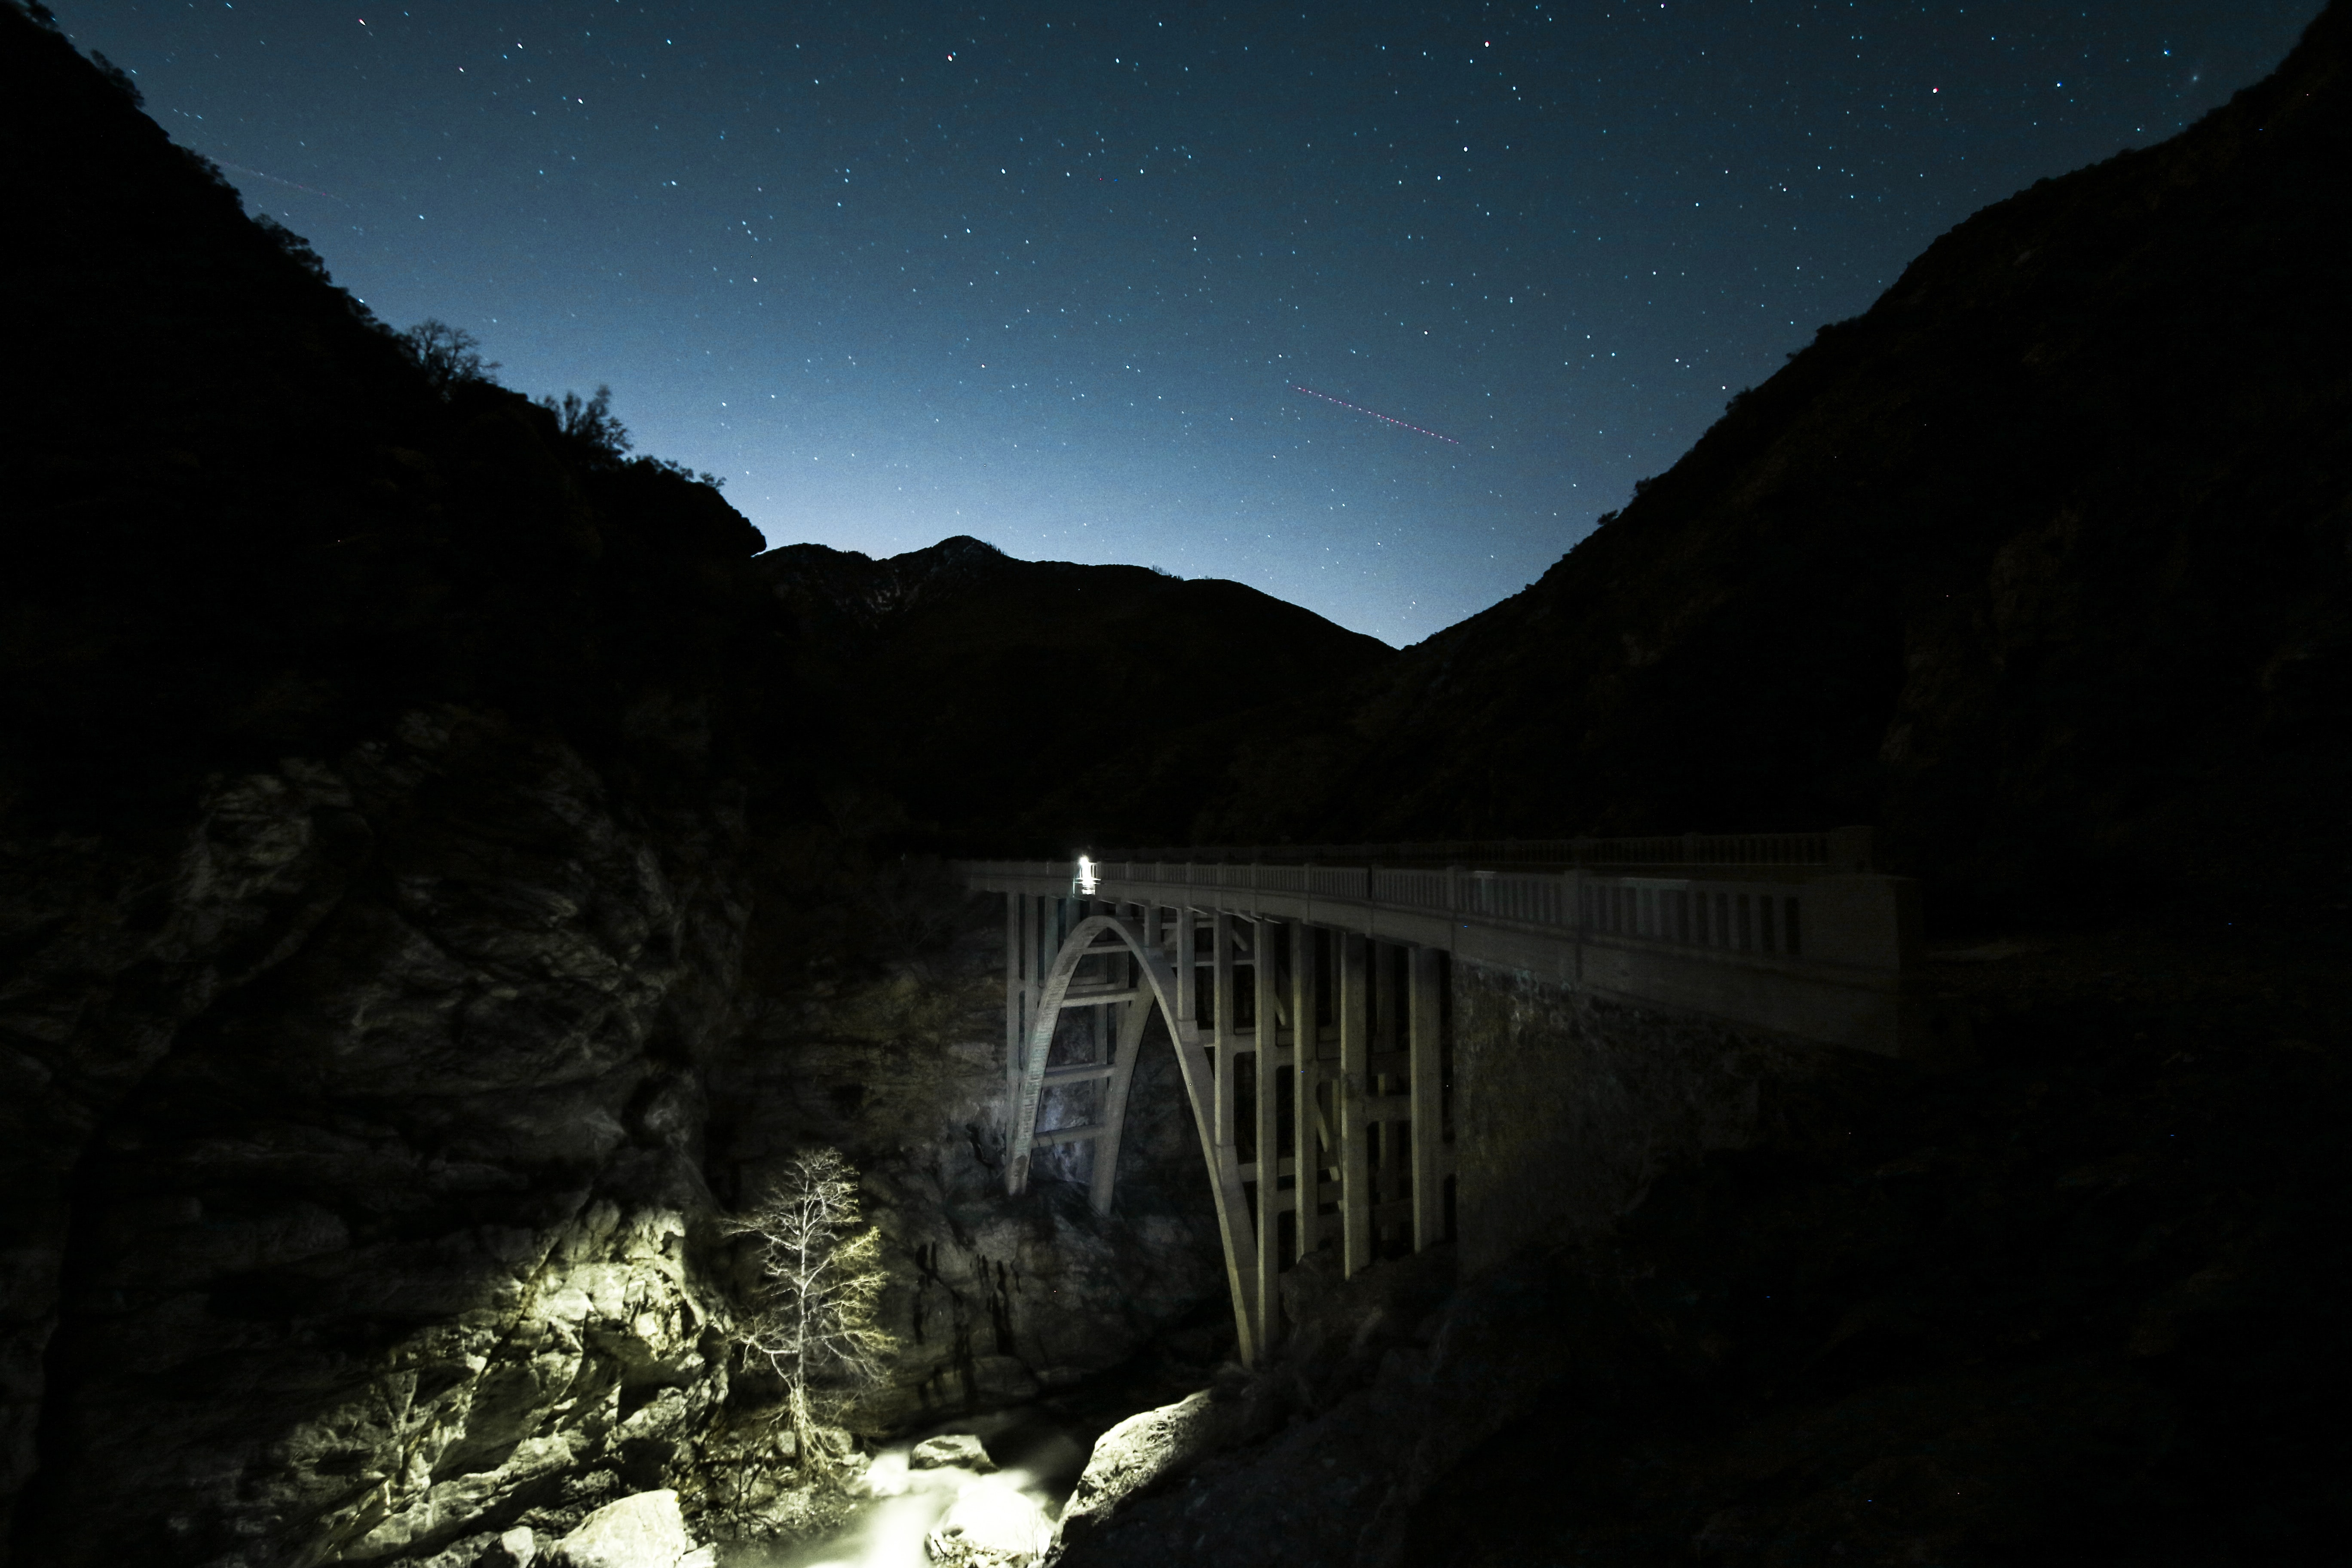 The bridge between mountains with illuminated sky, ground, and stars.